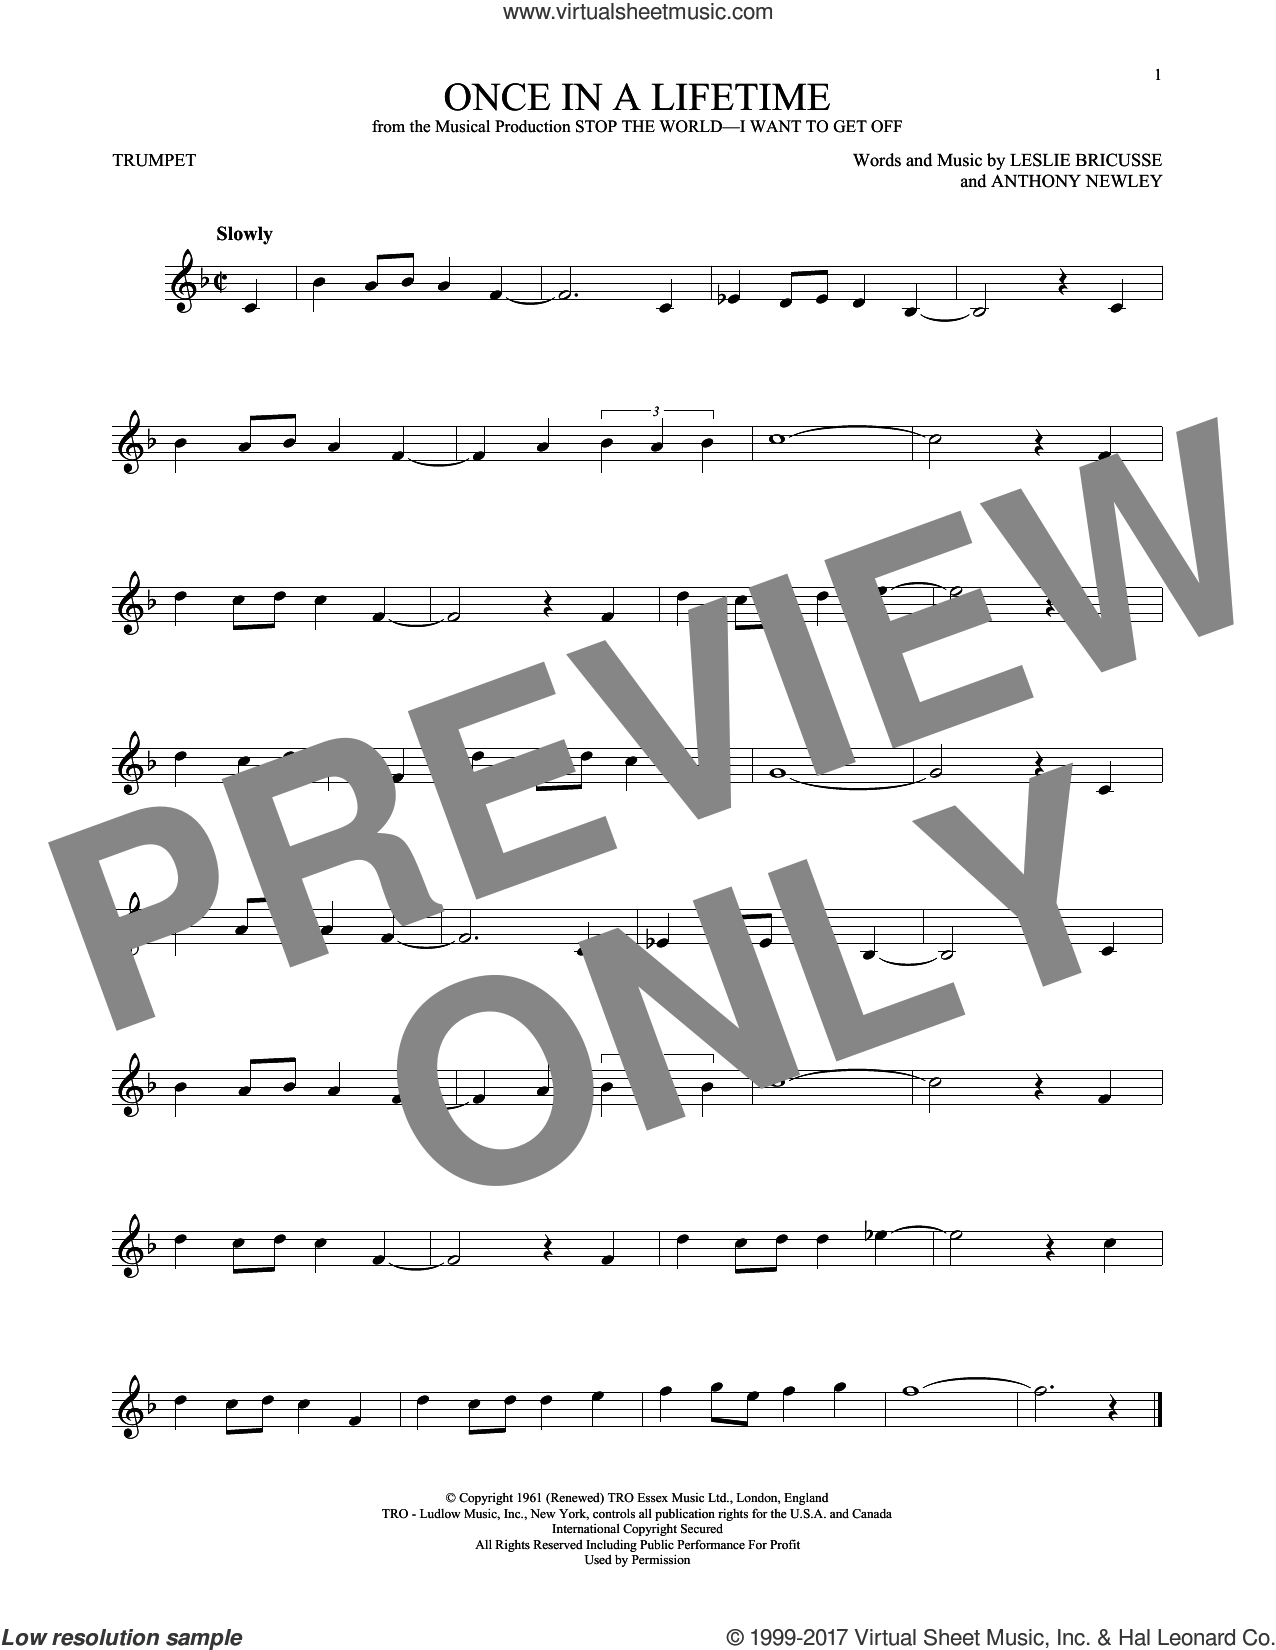 Once In A Lifetime sheet music for trumpet solo by Leslie Bricusse and Anthony Newley, intermediate skill level